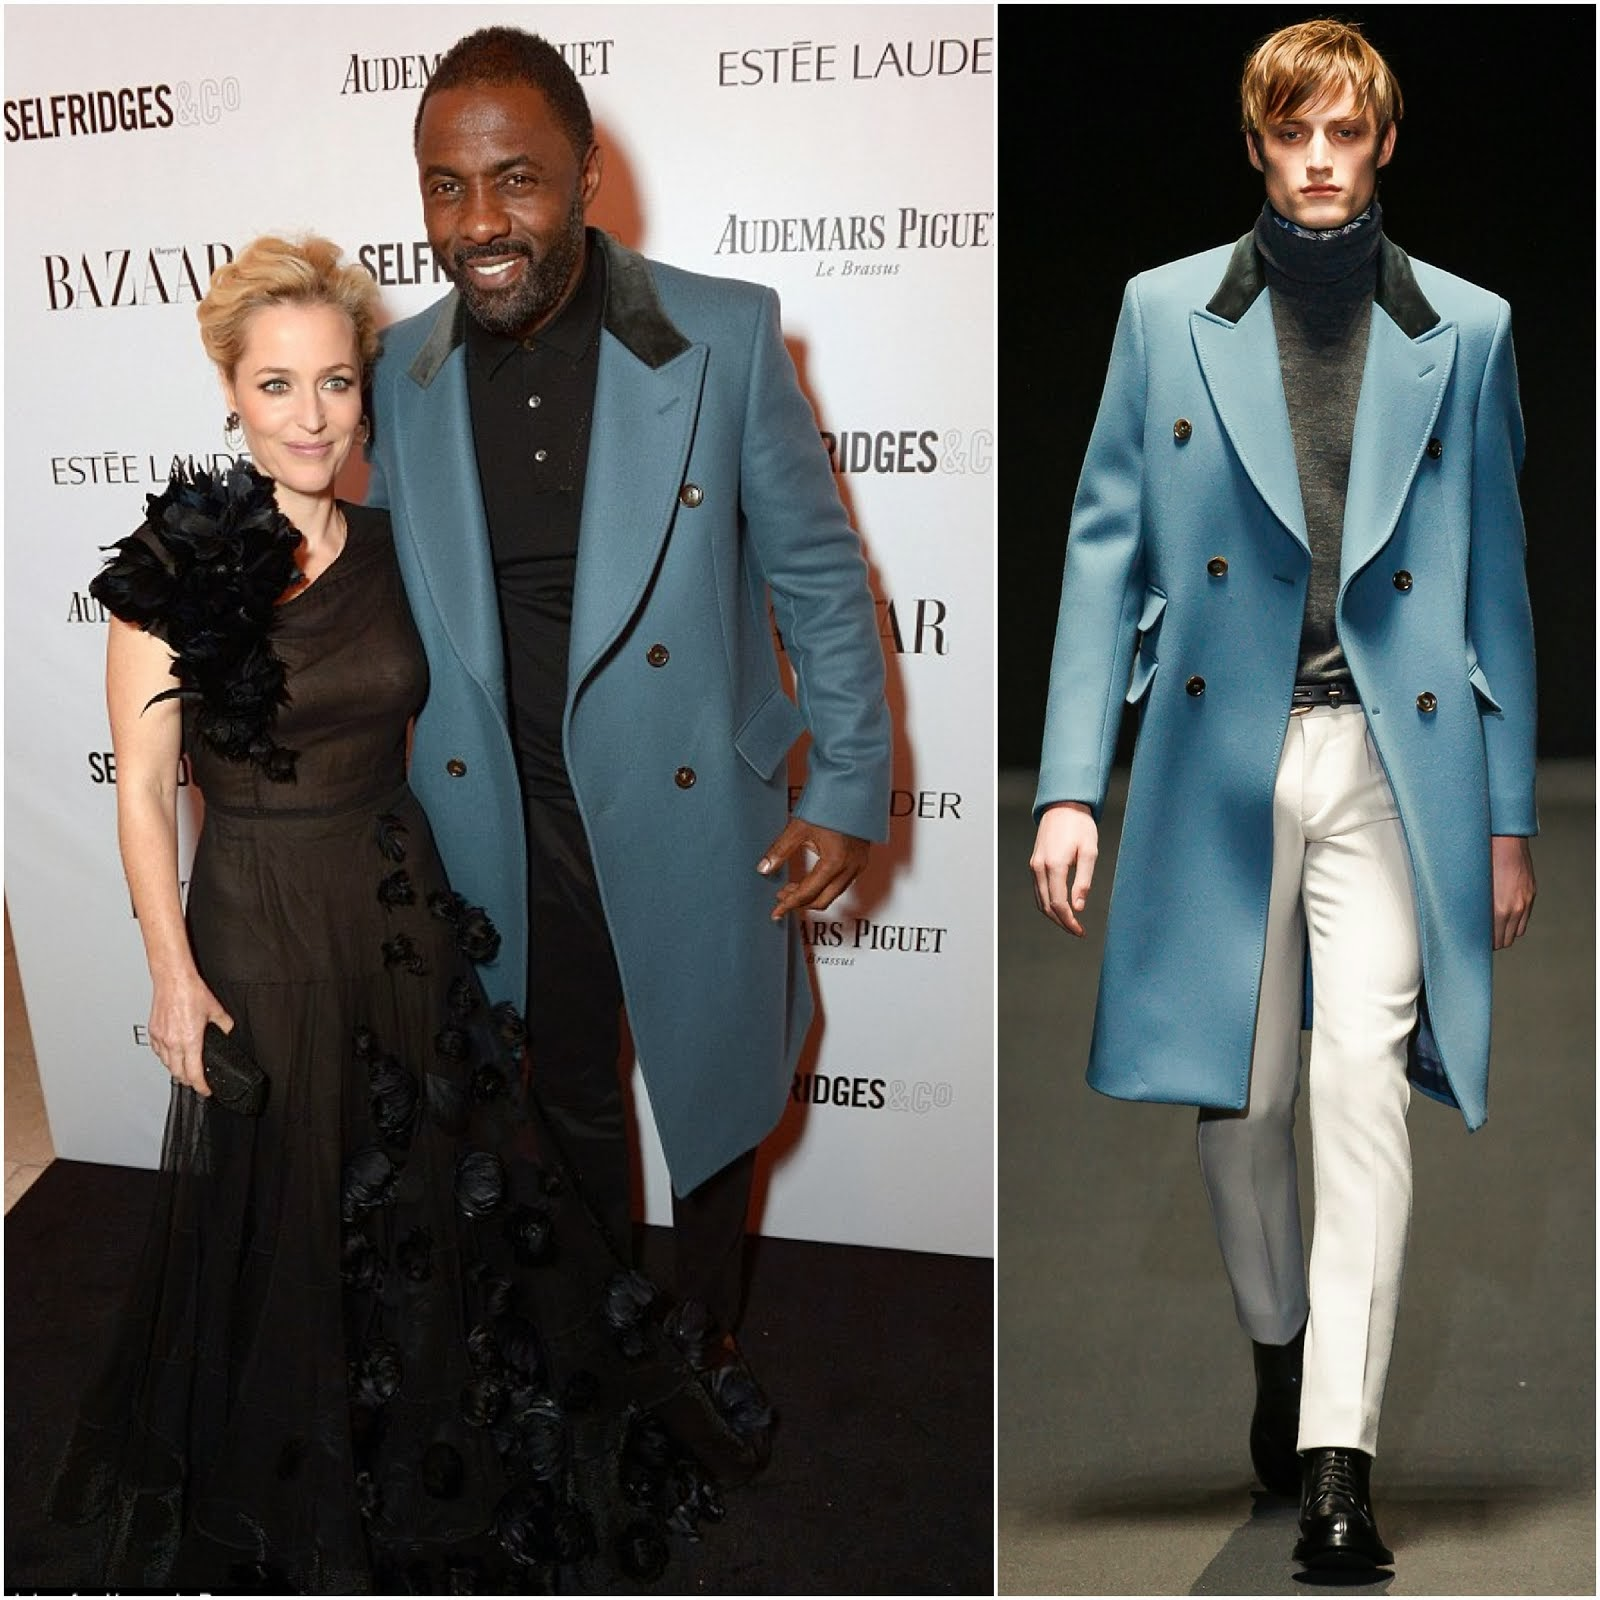 00O00 Menswear Blog: Idris Elba in Gucci blue coat - Harper's Bazaar Women of the Year Awards, London Nov 2013